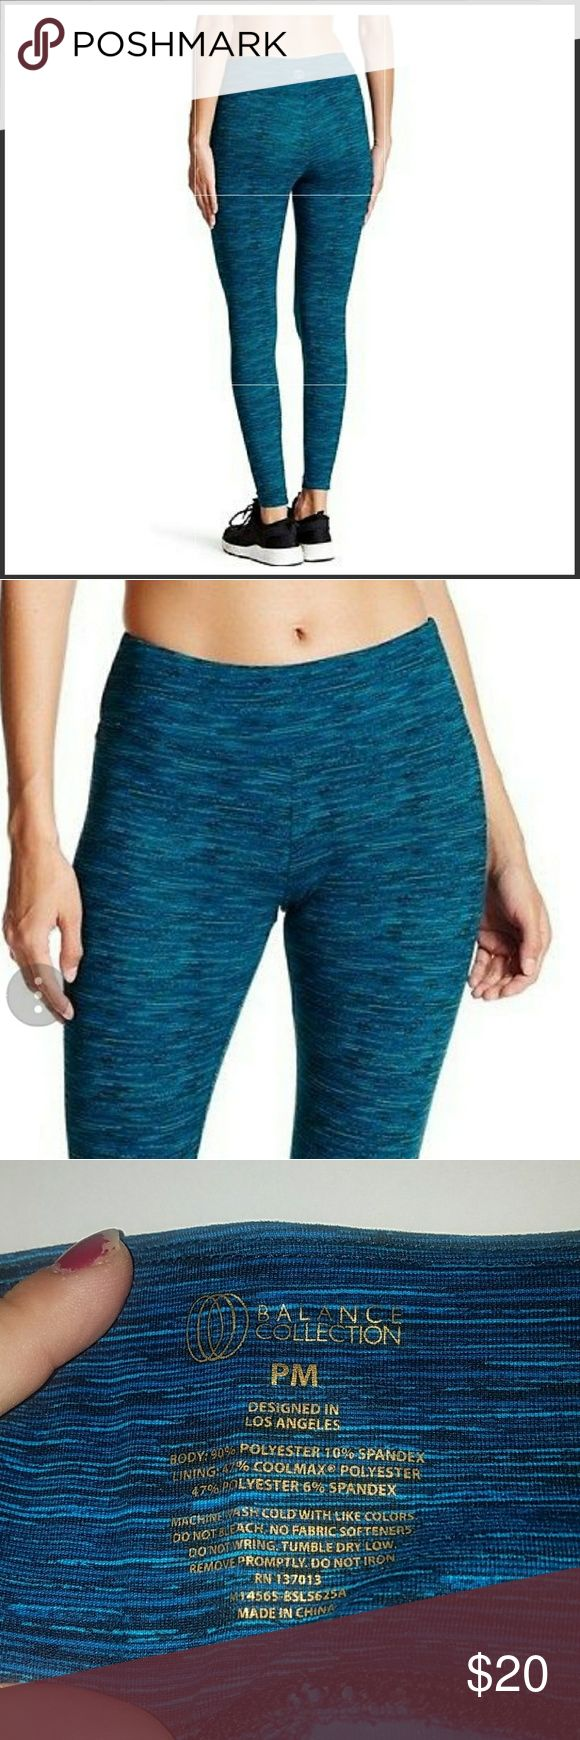 Yoga/gym pants Petite size medium from balance collection with advance knitting technology that draws moisture from the skin to the fabrics outer surface where it's spreads to evaporate quickly.the fabric has been brushed to give it a soft comfortable feel. Petite size medium fits sizes 10 to 12 balance collection Pants Leggings